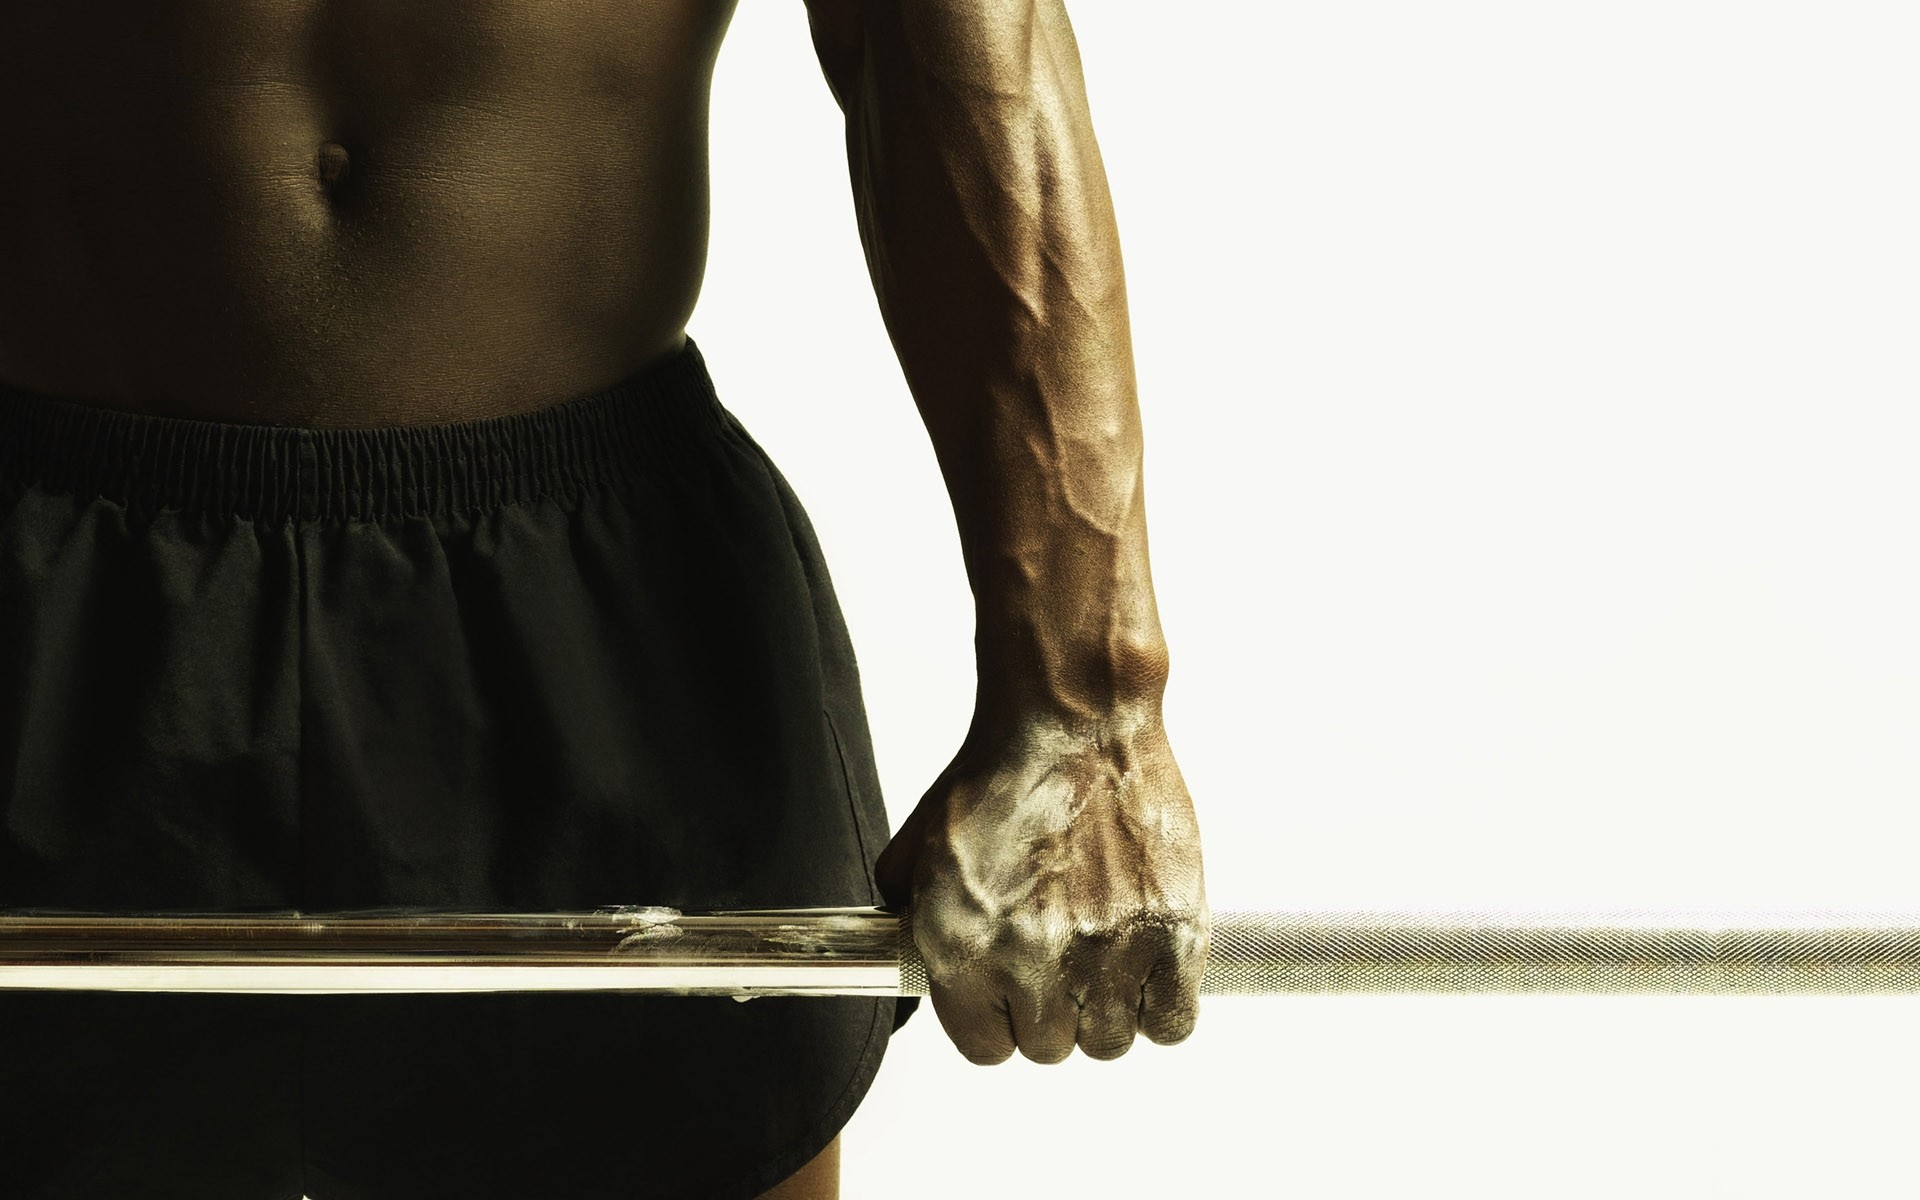 Sports – Weightlifting Wallpaper